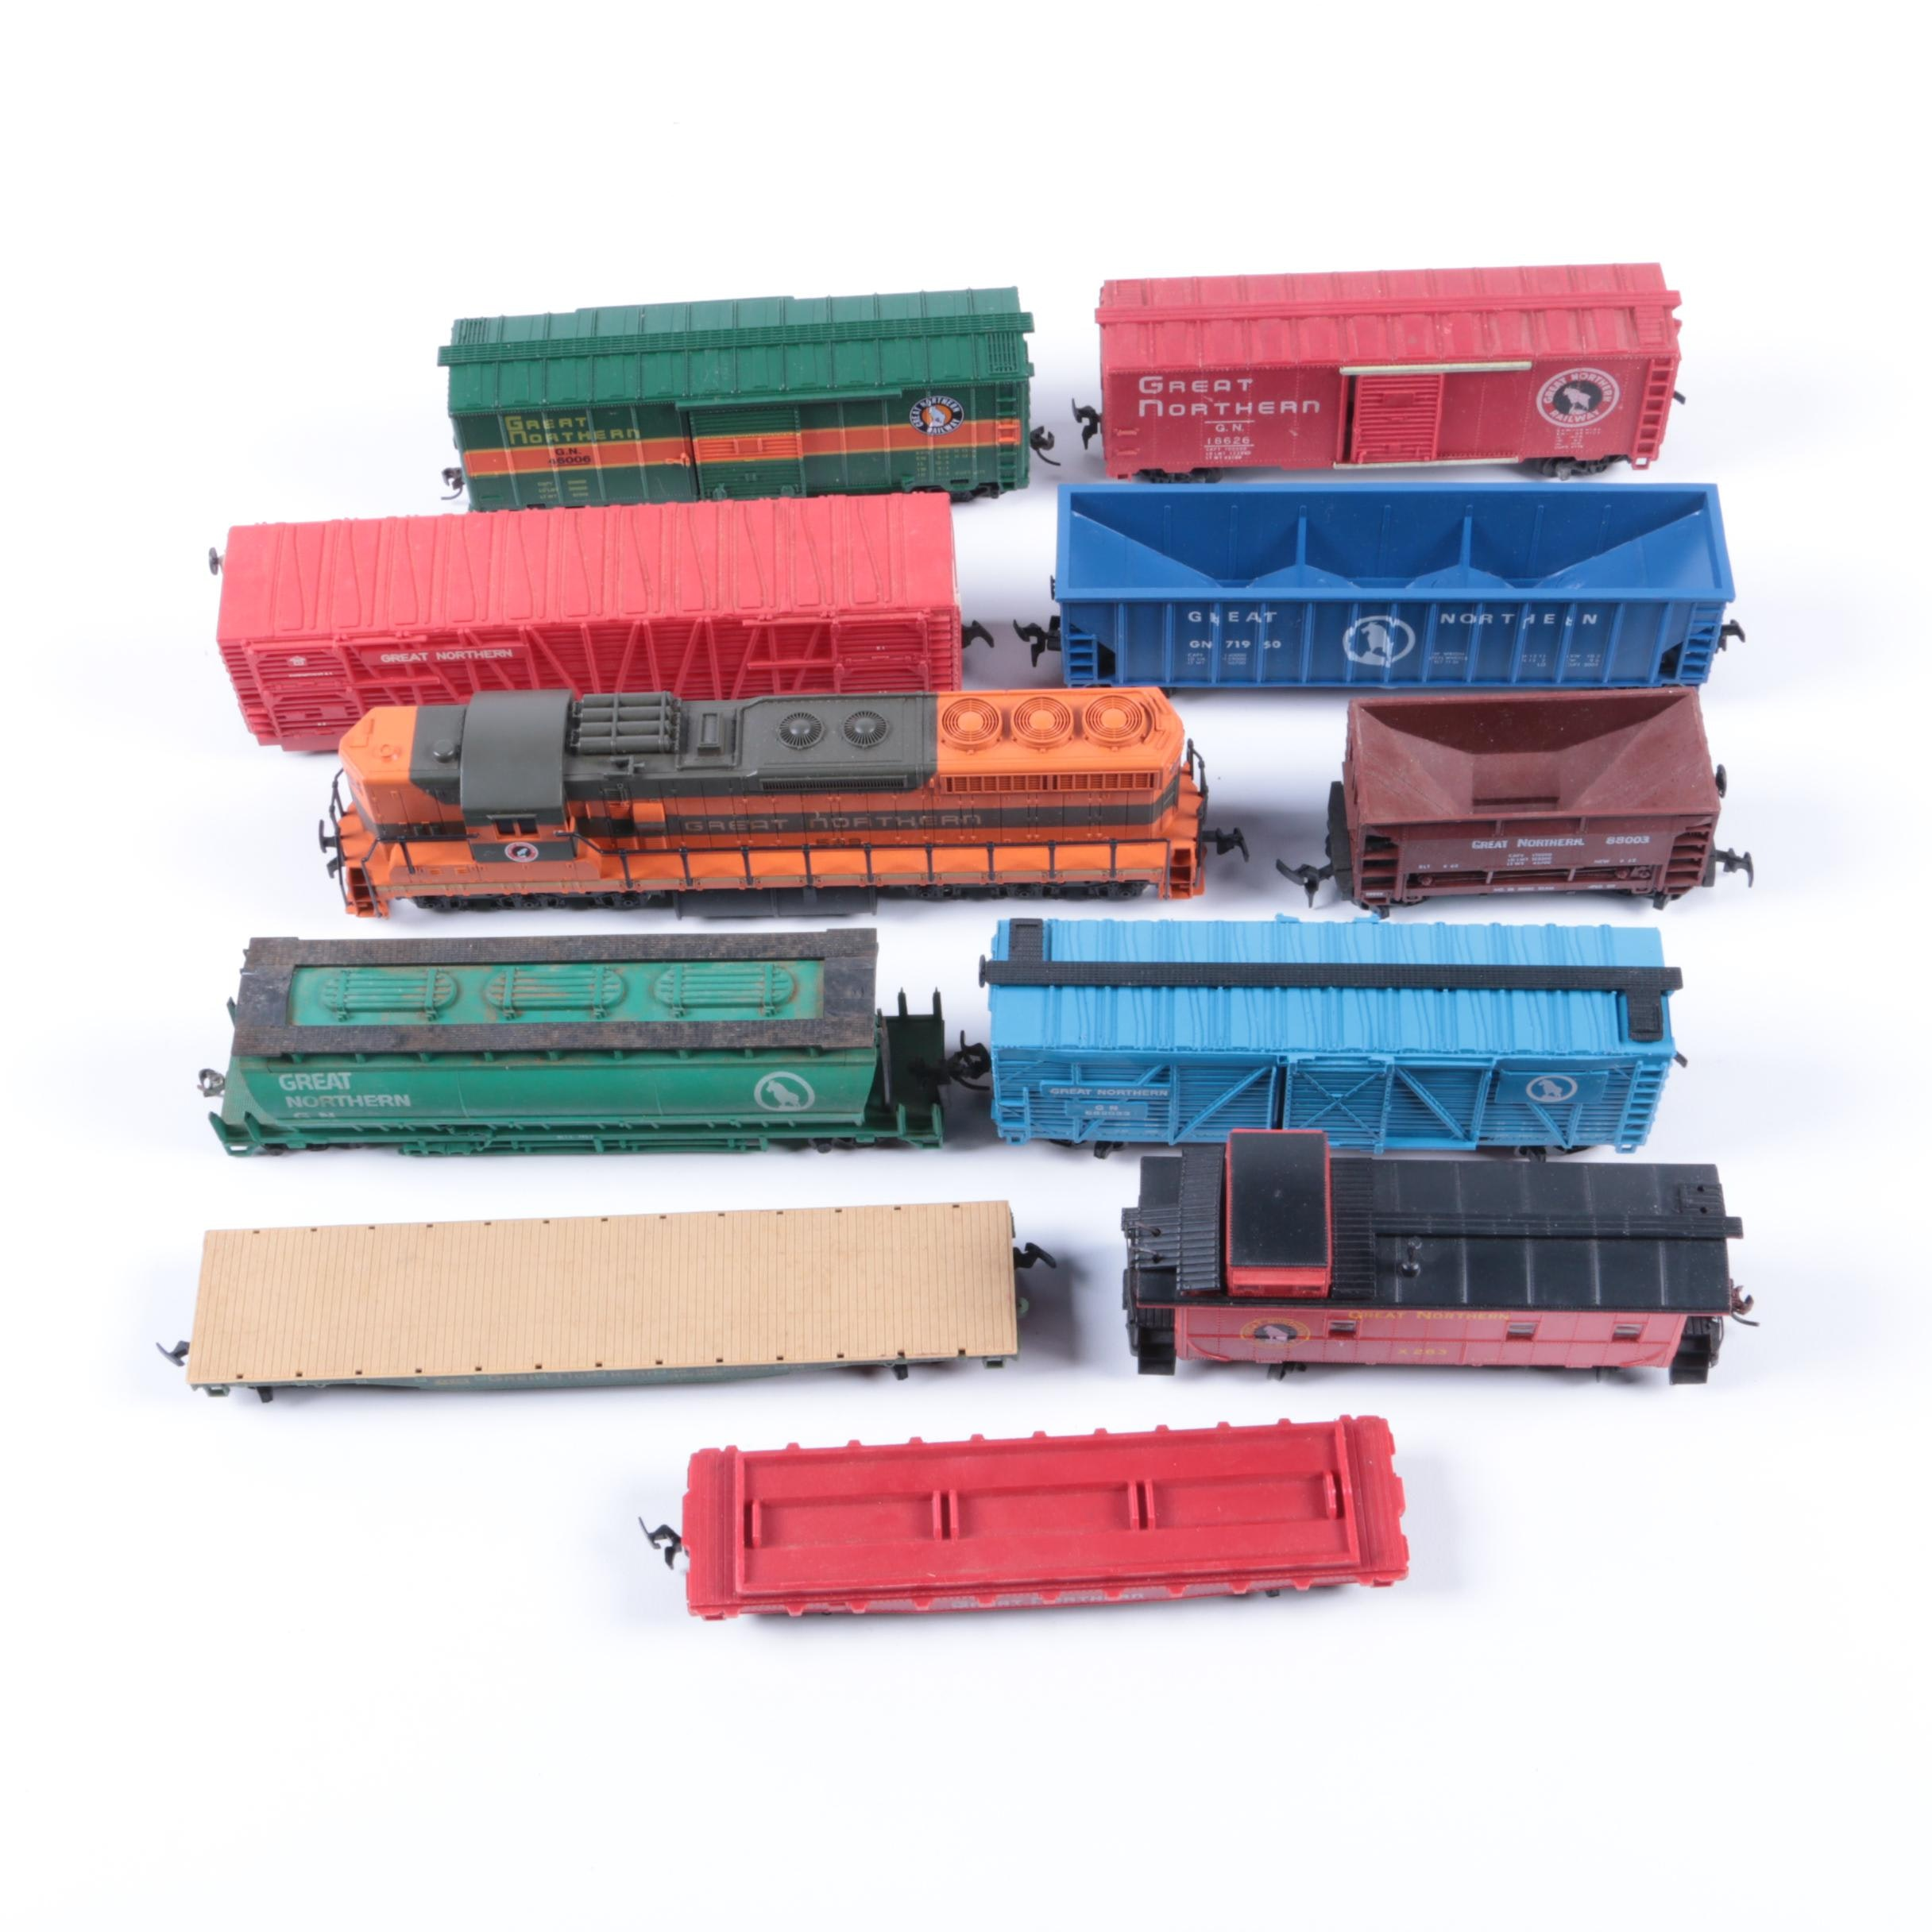 Assorted HO Train Cars Including AHM